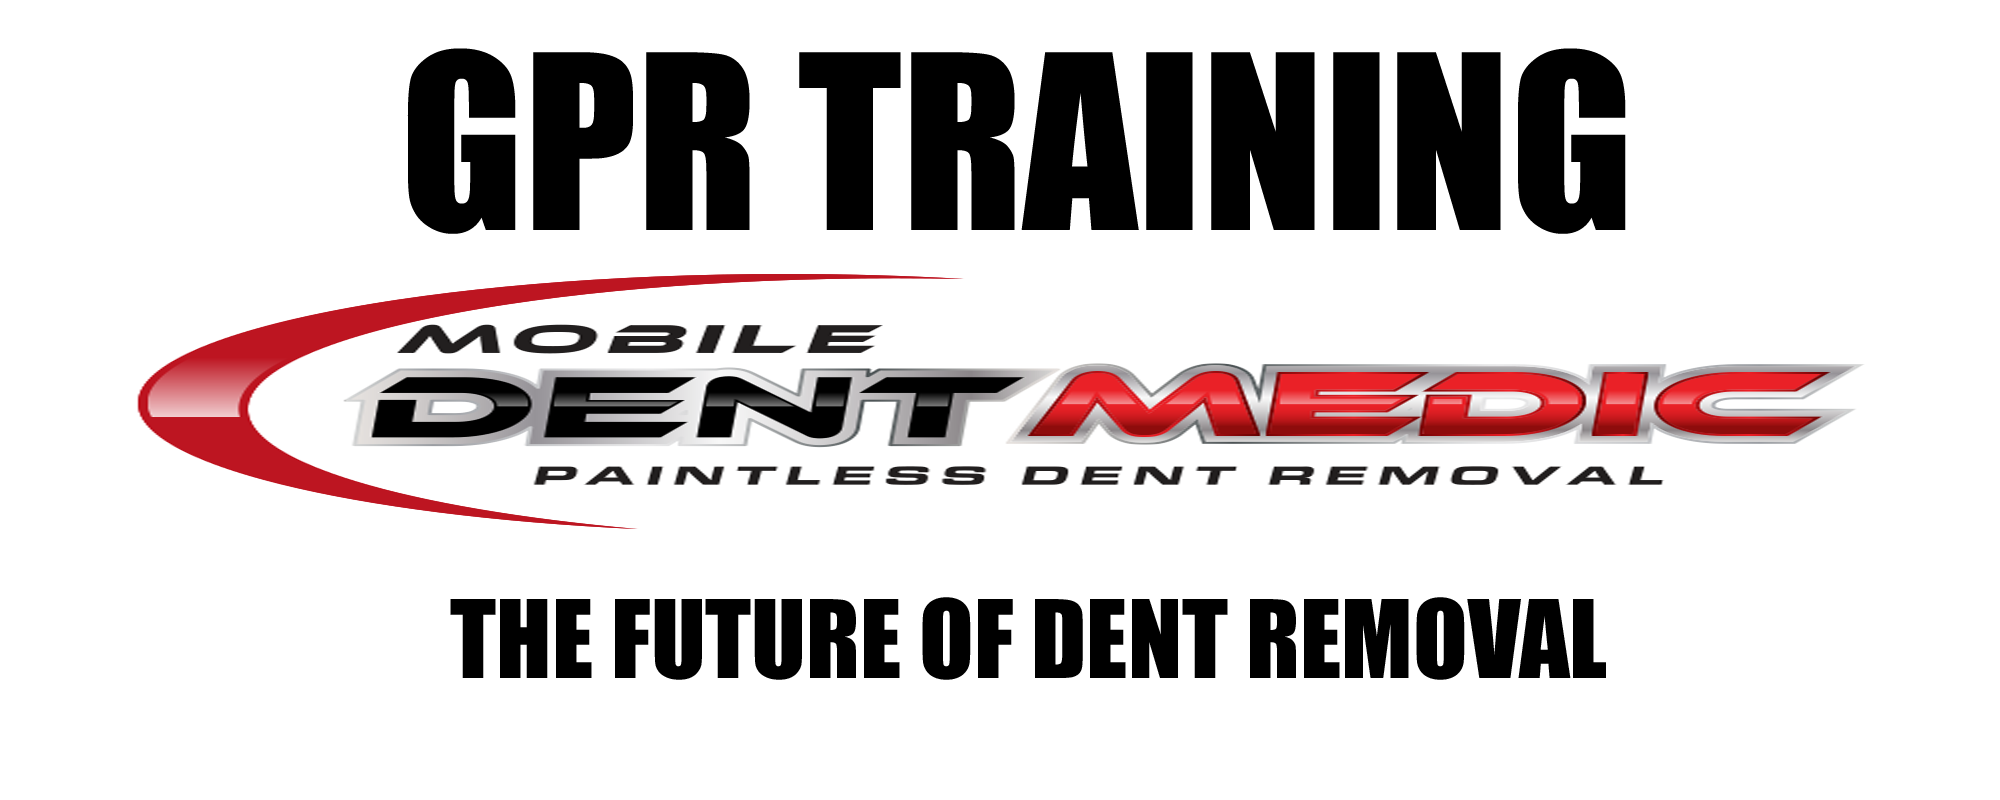 GPR_Glue_Pull_Repair_Training Glue Pull Repair Training  | Mobile Dent Medic Paintless Dent Repair